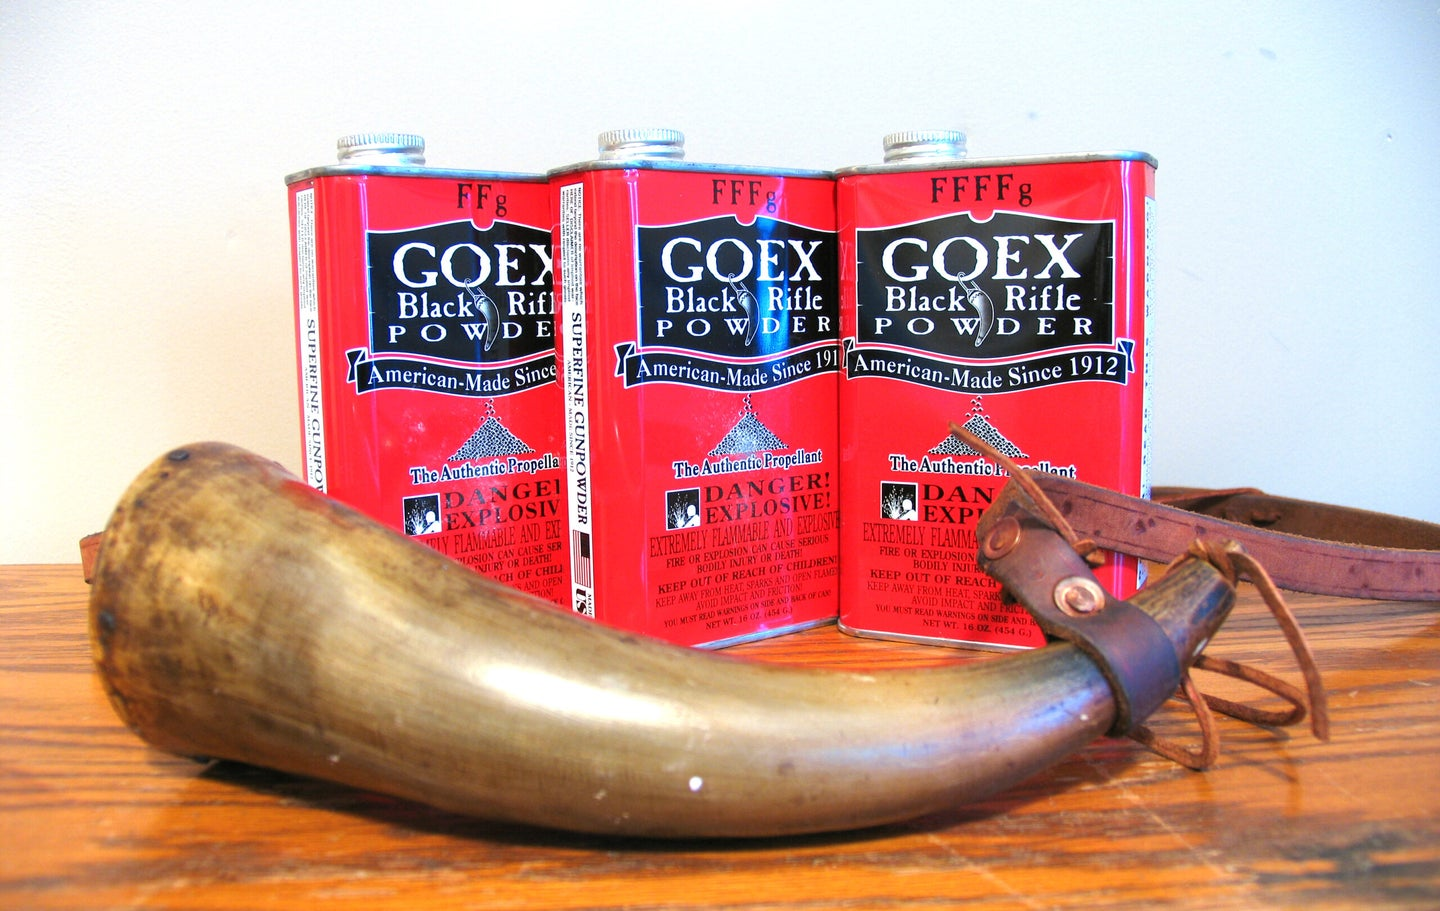 Three cans of GOEX Black powder on a table with a powder horn.